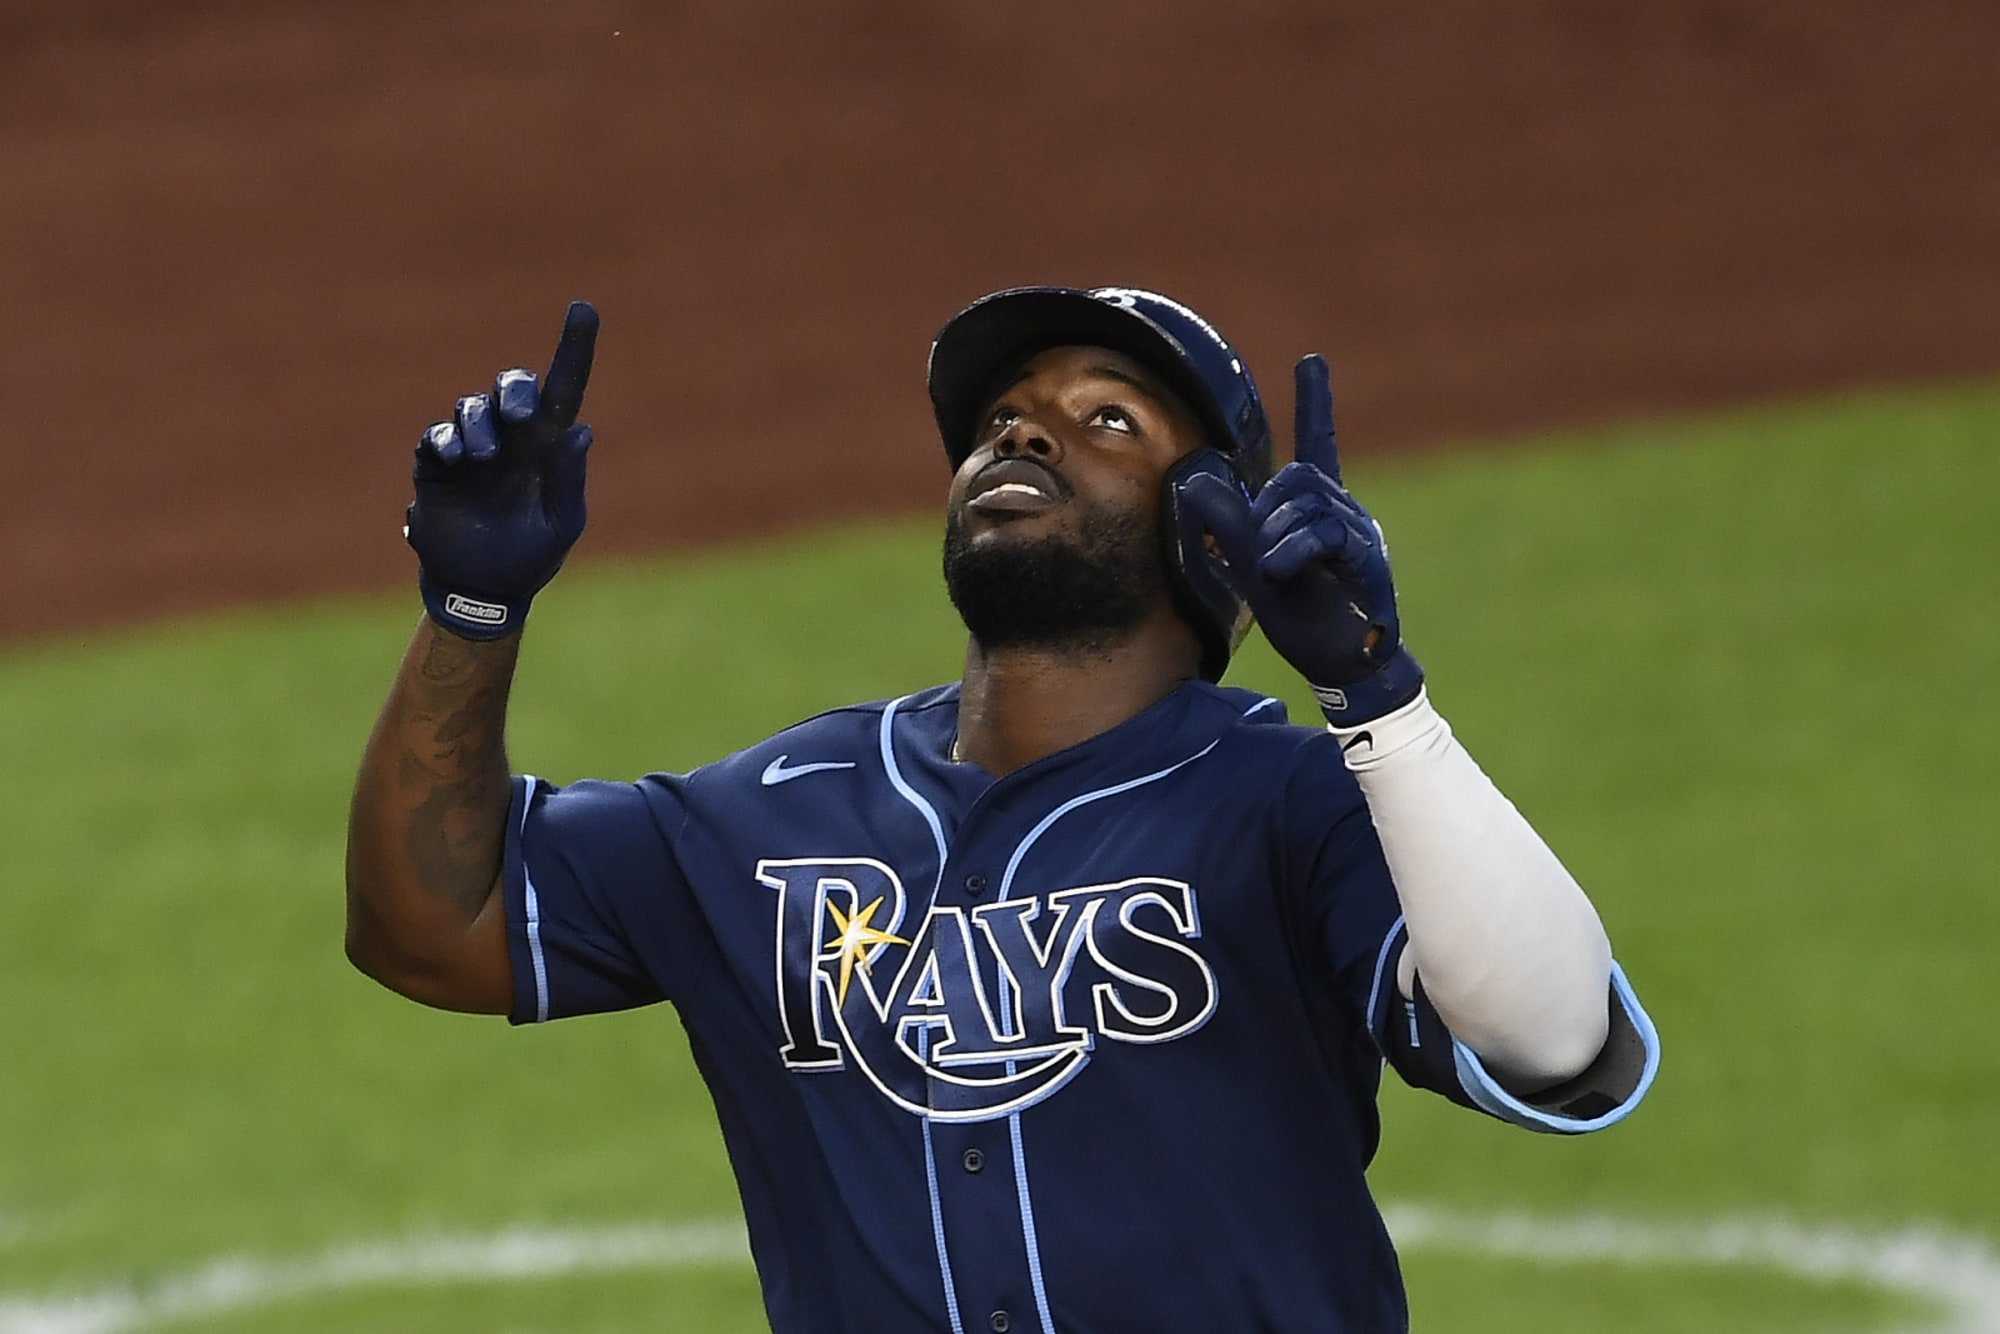 Rays Game 4 odds